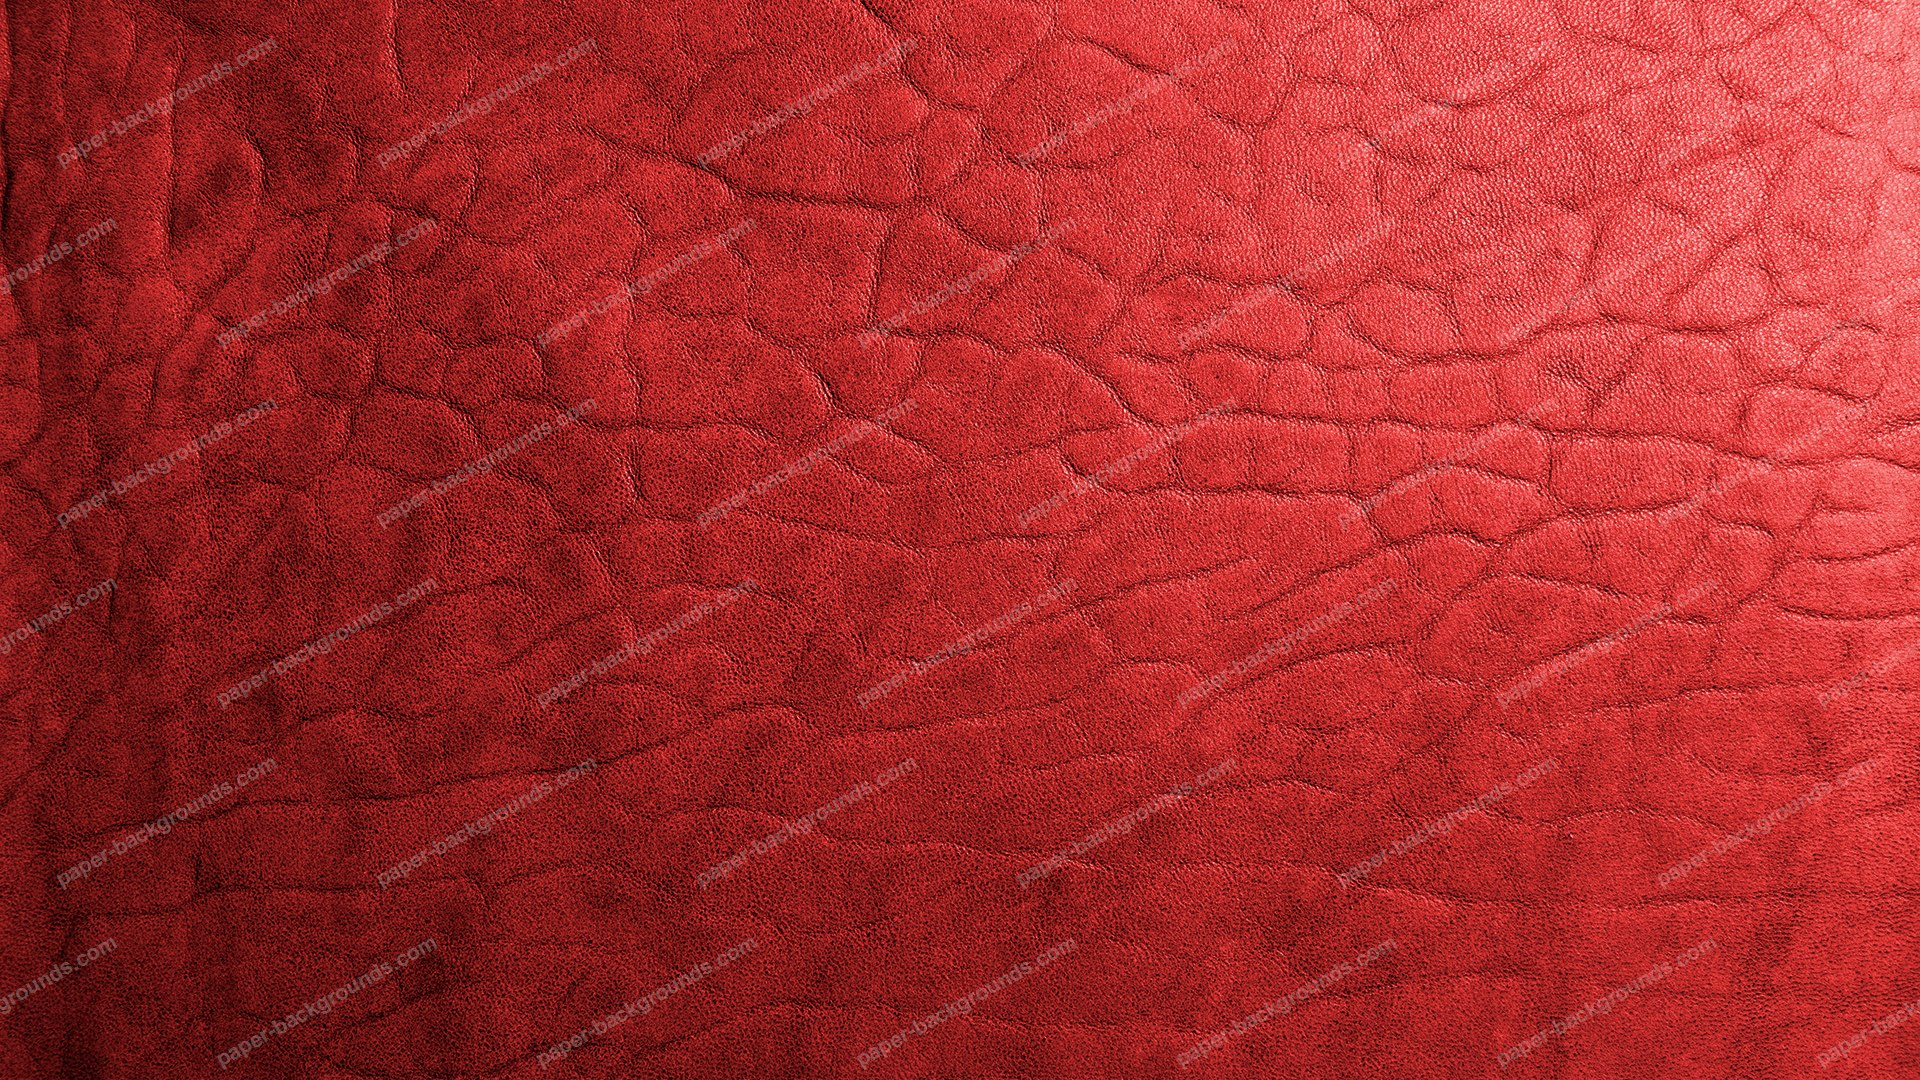 red textured background hd - photo #44